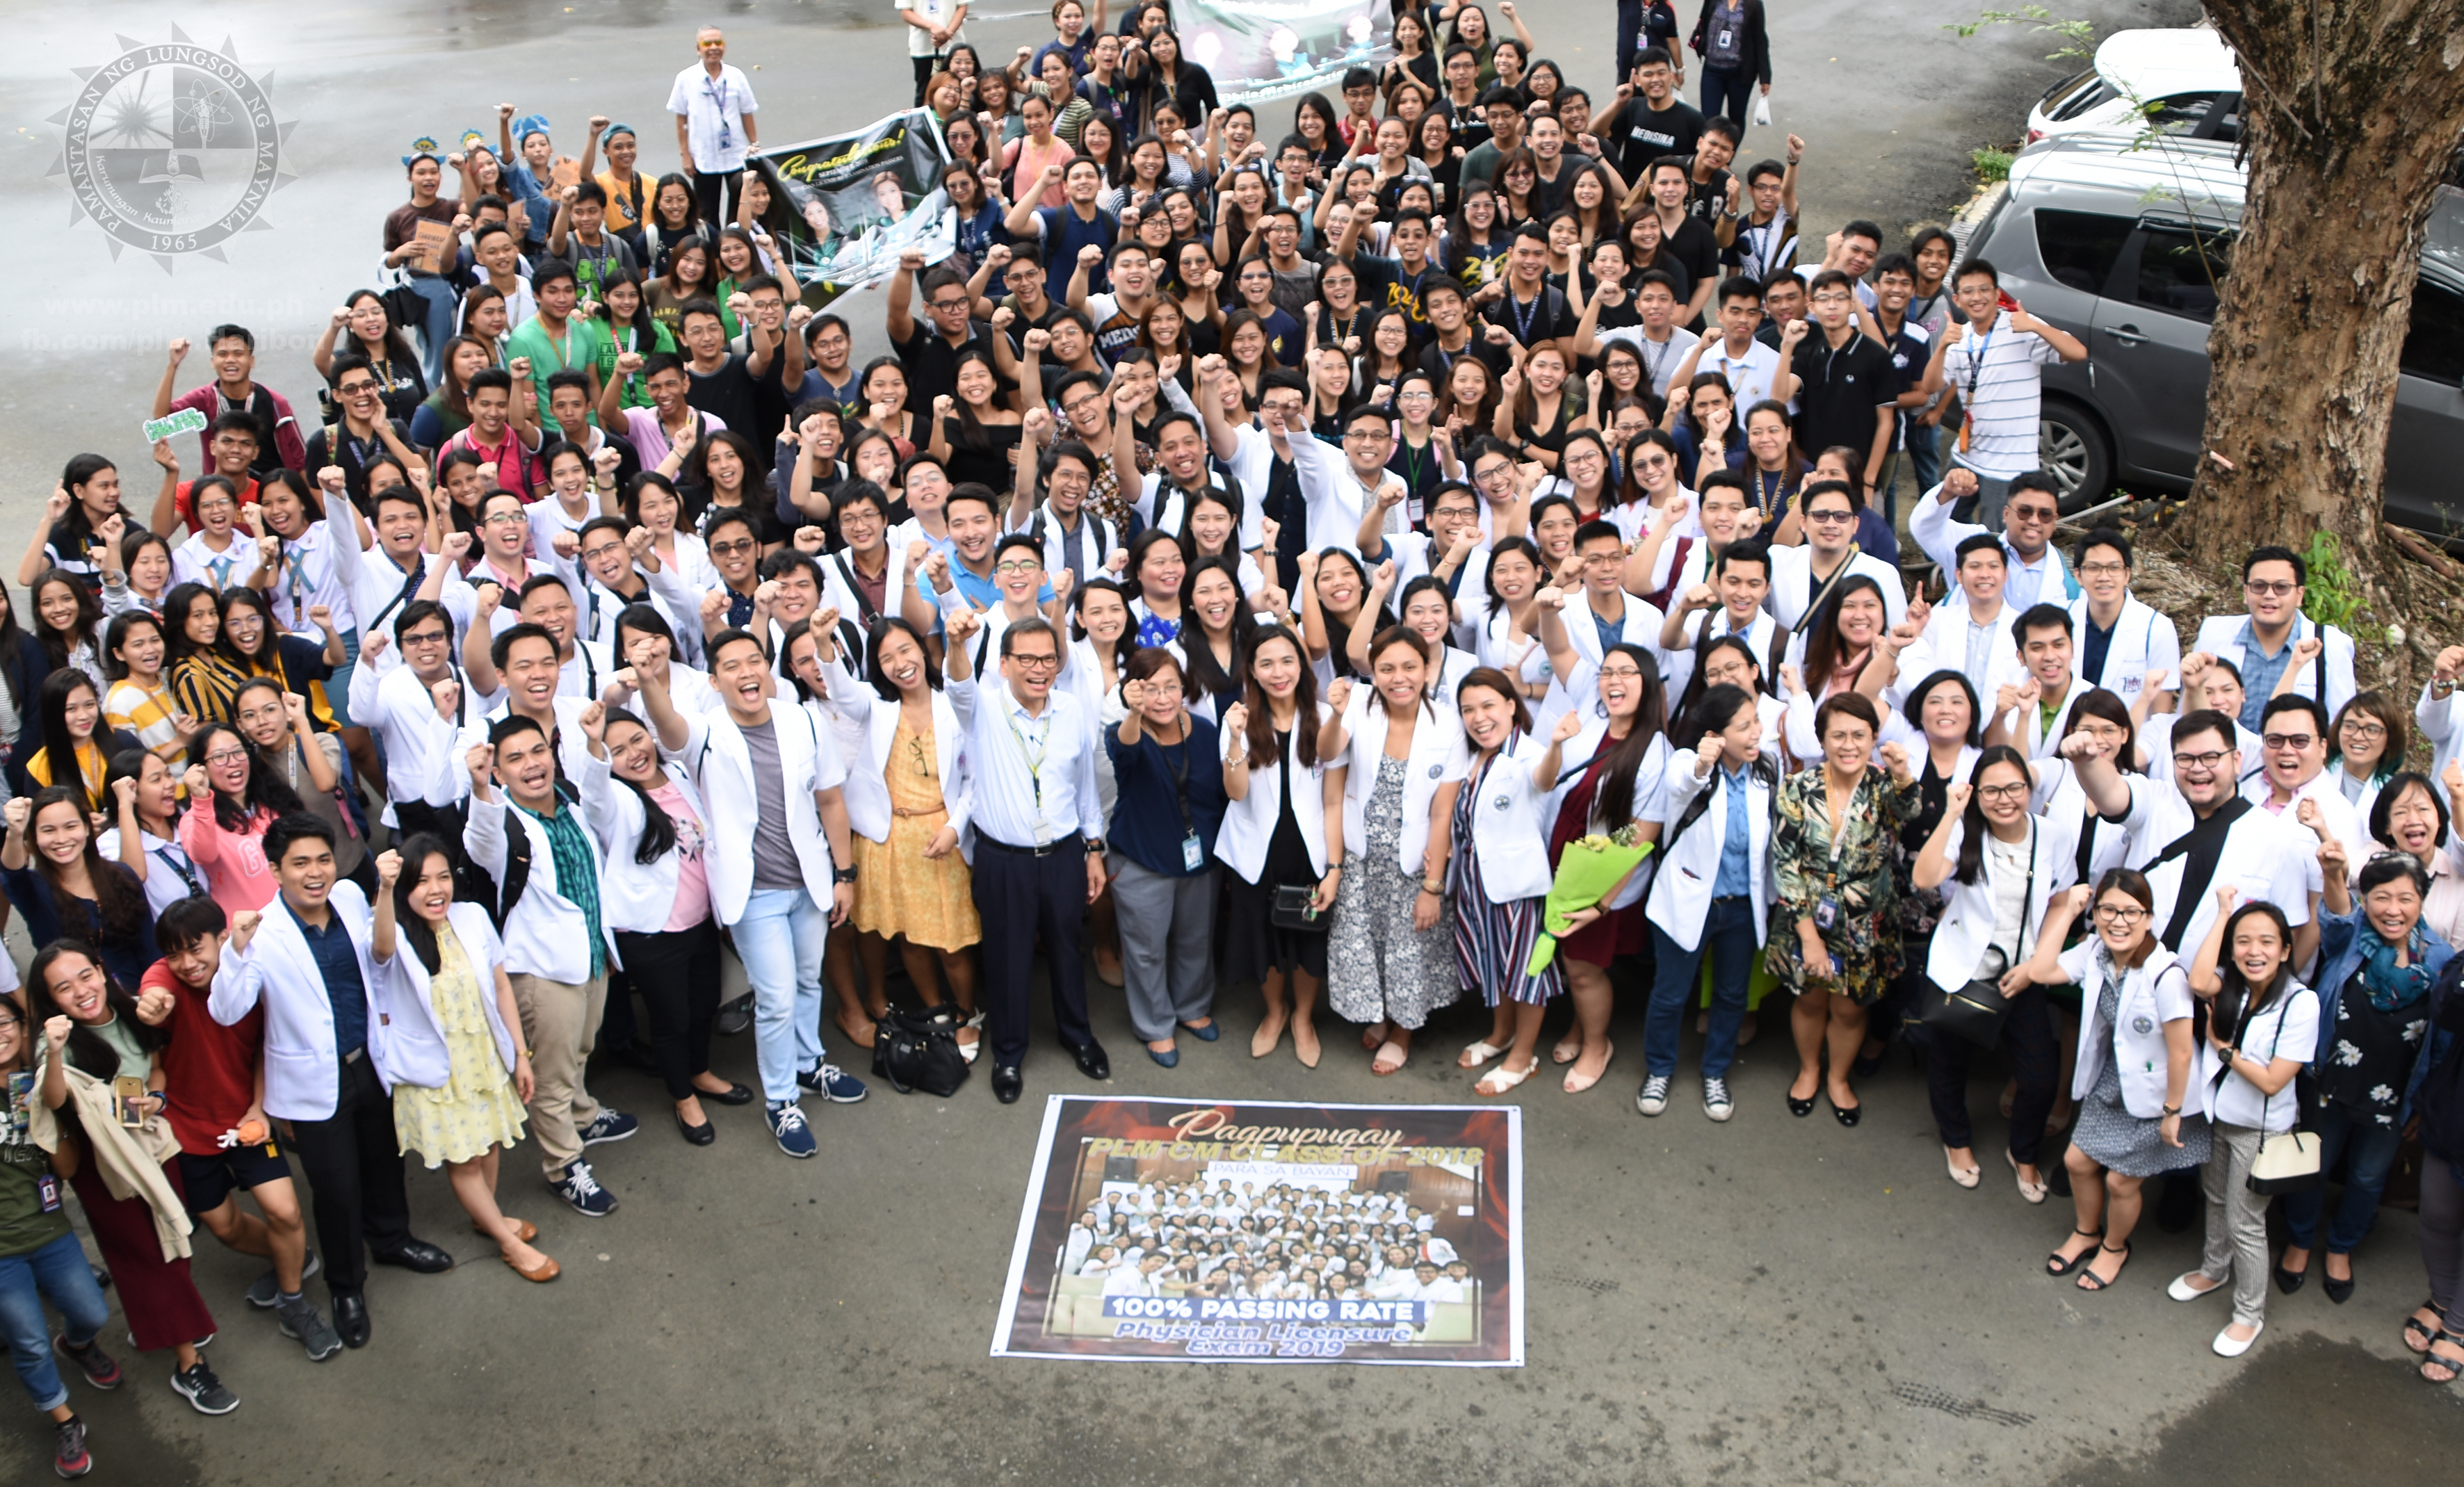 PLM gets 100% passing rate, holds recognition rite for MD board passers